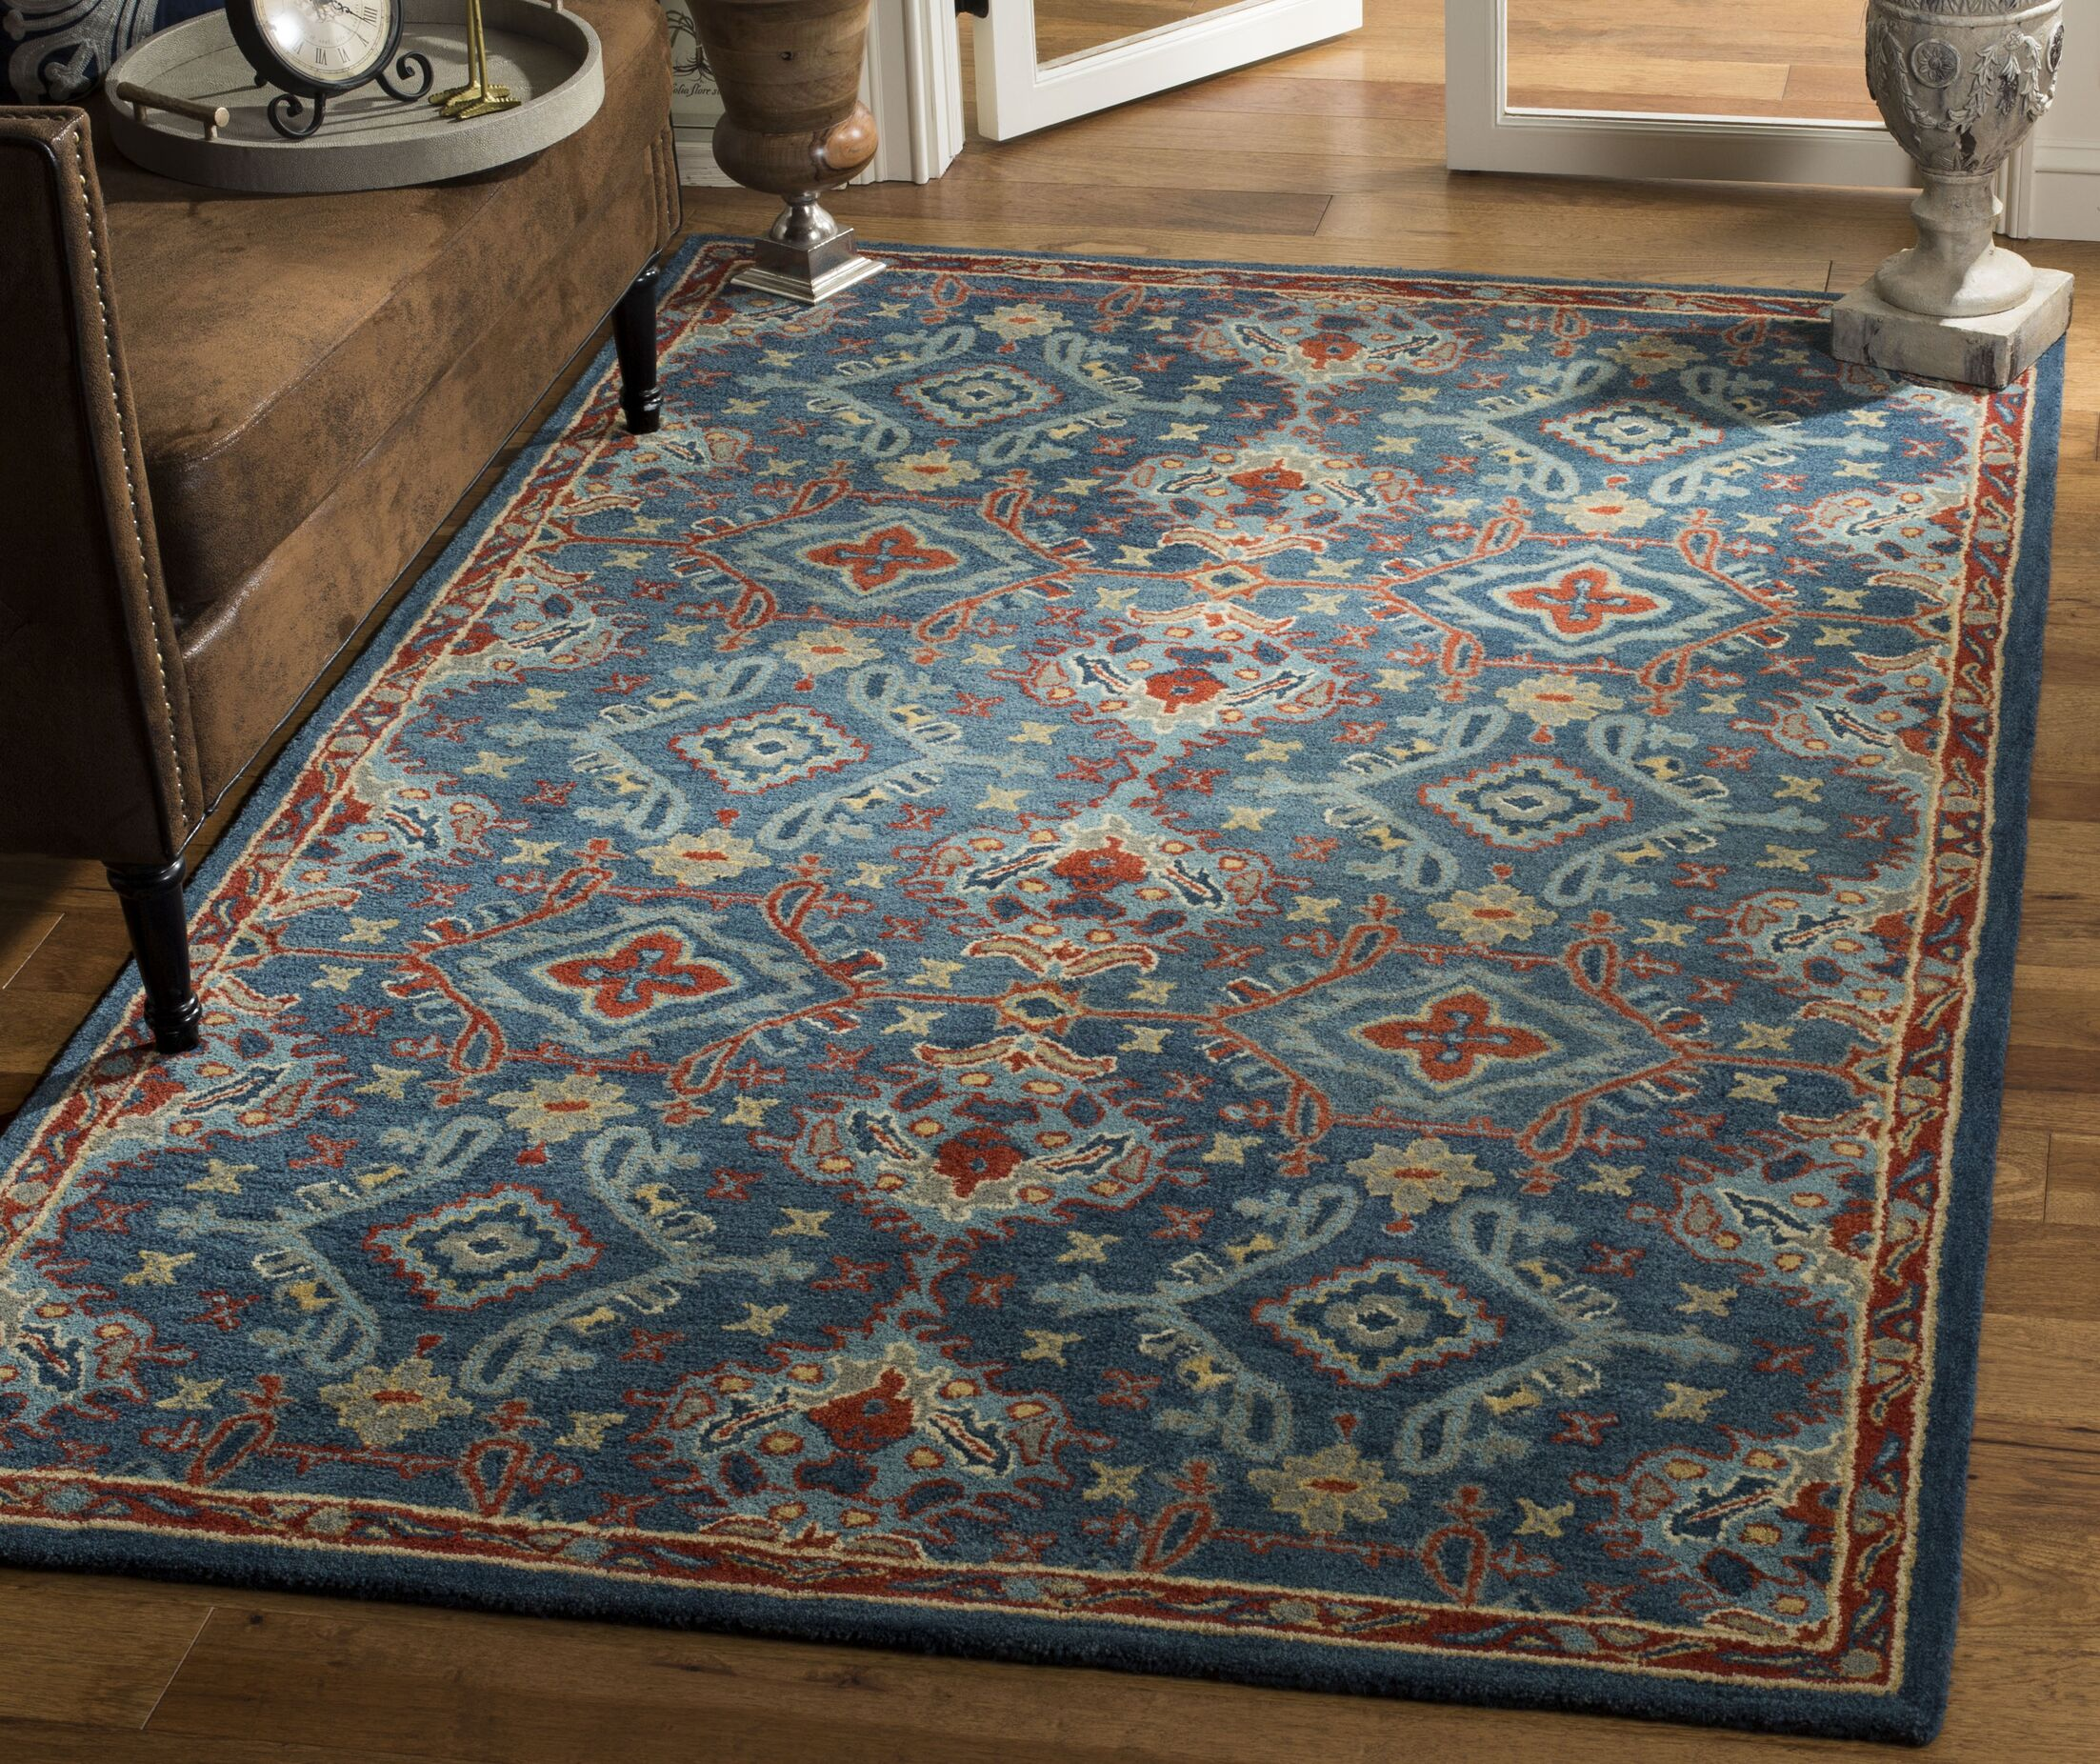 Albrightsville Hand Woven Wool Blue Area Rug Rug Size: Rectangle 8' x 10'